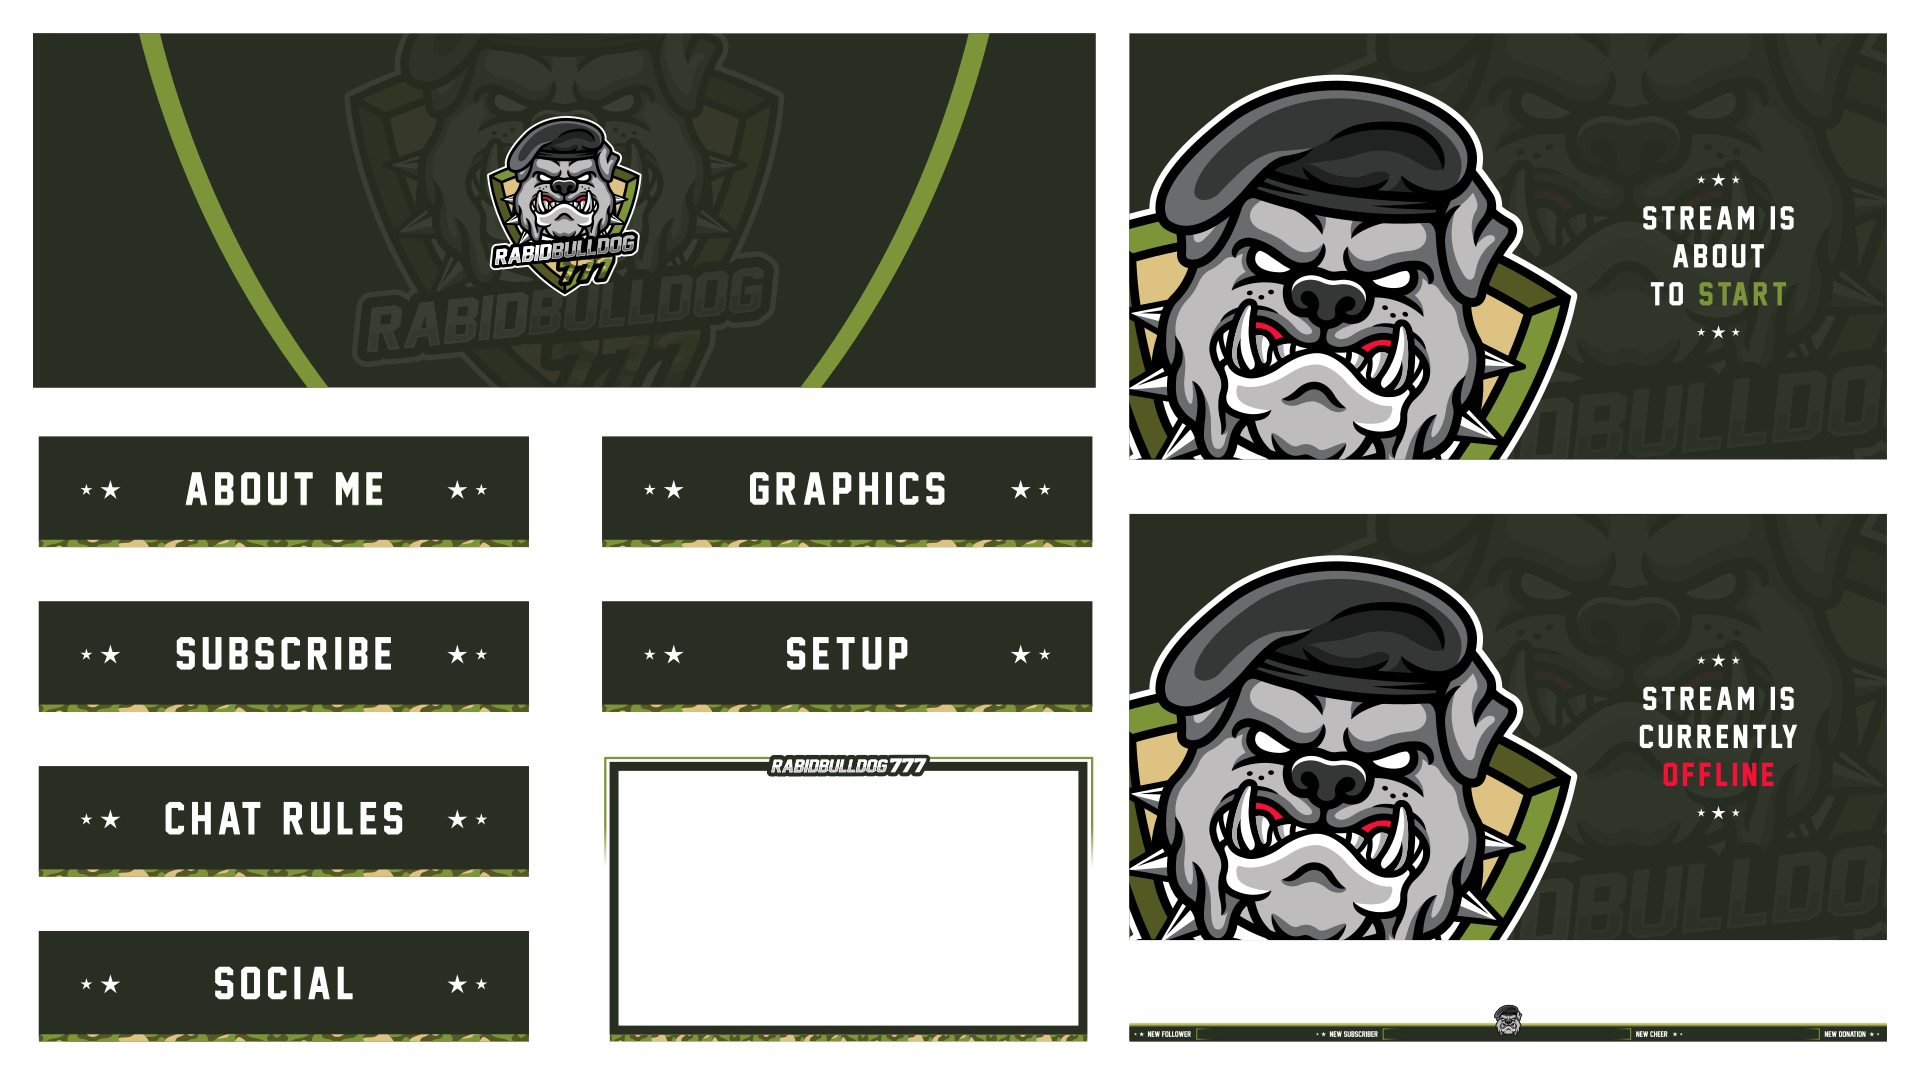 Military style twitch package using a bulldog logo with a slight esport style